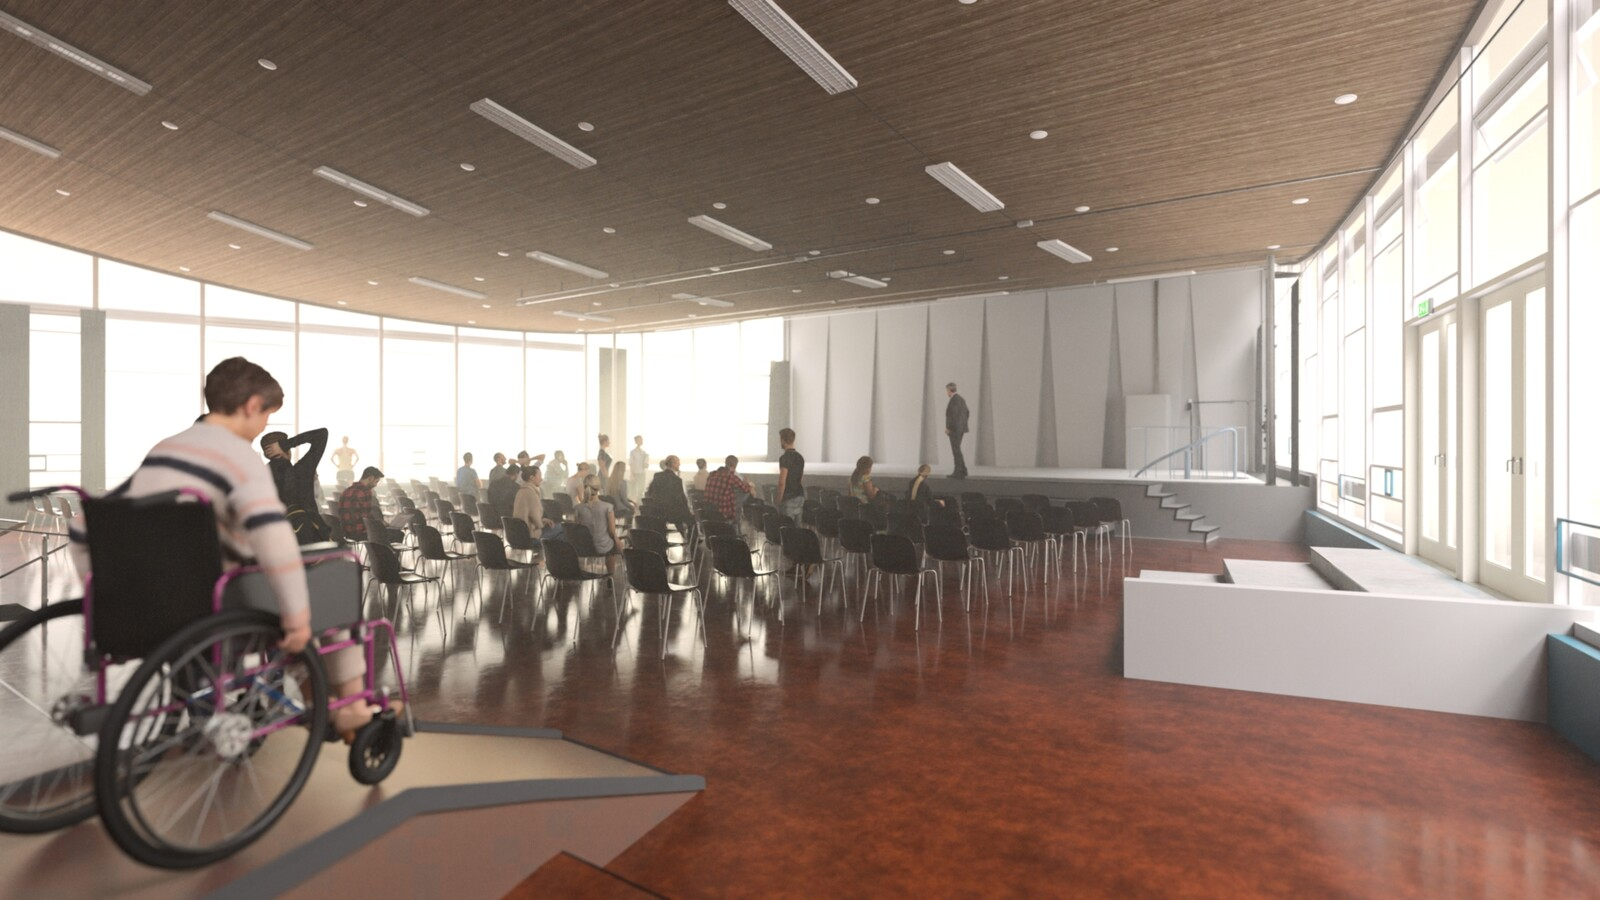 SketchUp 2021 + Thea Render V3 Broedplaats LELY (The Lely Incubator) Auditorium Amsterdam Showroom Final-Scene 6E 22m04s HD1080 1536sp